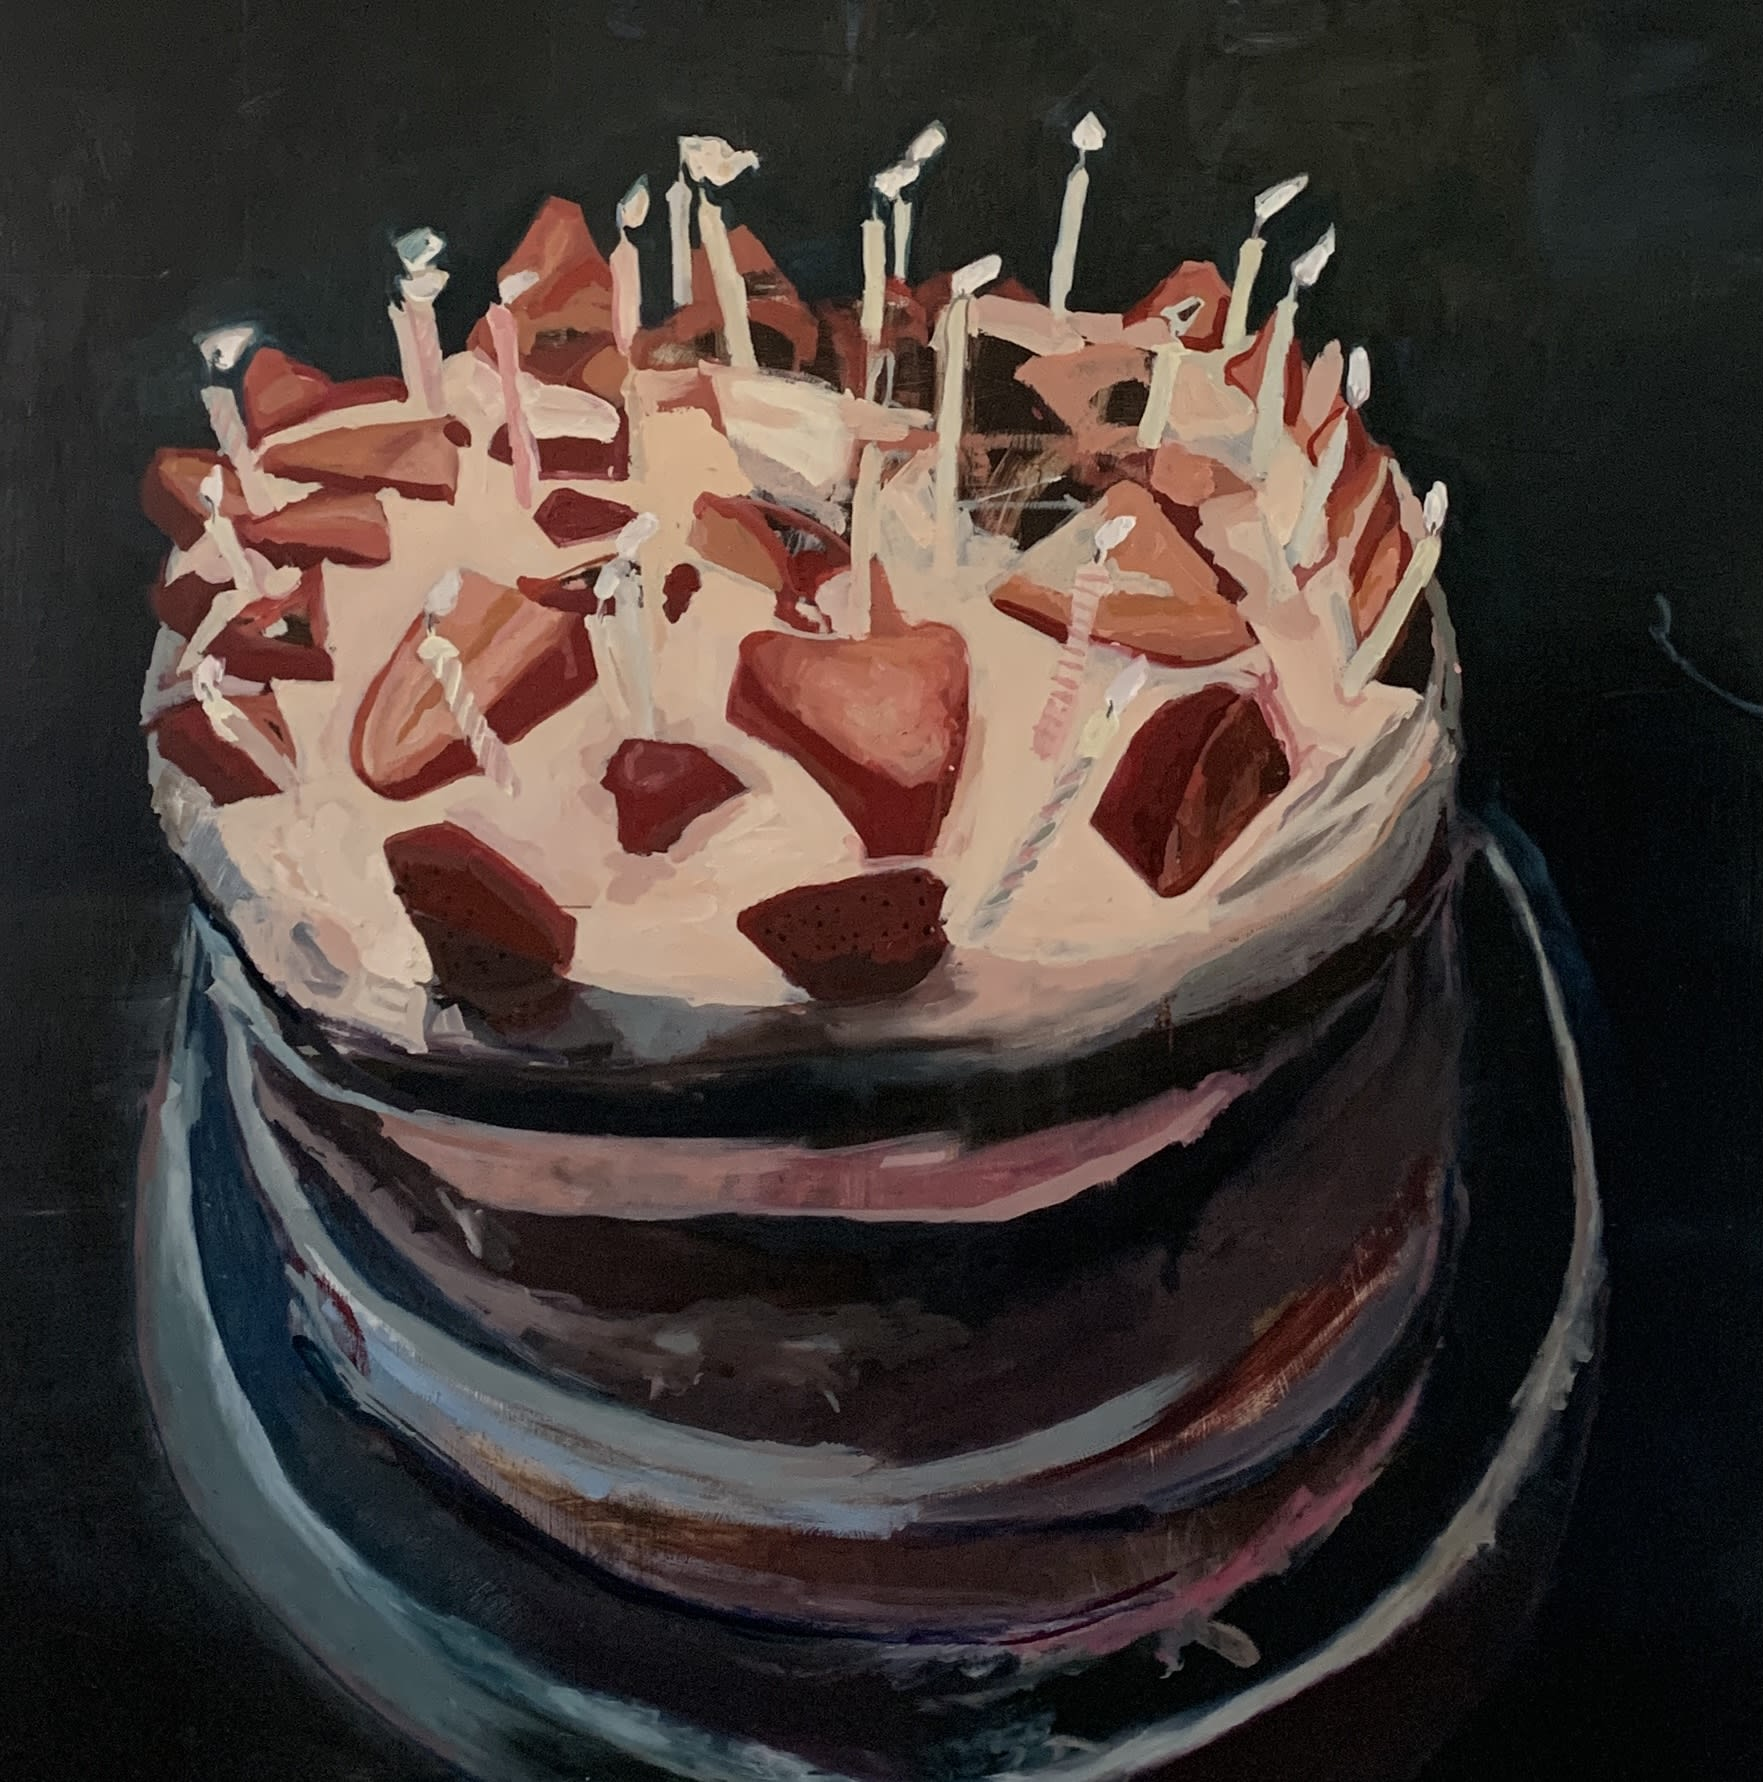 """<span class=""""link fancybox-details-link""""><a href=""""/artists/56-hadas-tal/works/1175-hadas-tal-cake/"""">View Detail Page</a></span><div class=""""artist""""><strong>Hadas Tal</strong></div> <div class=""""title""""><em>Cake</em></div> <div class=""""medium"""">Oil on wood panel</div> <div class=""""dimensions"""">42 x 42 inches</div>"""